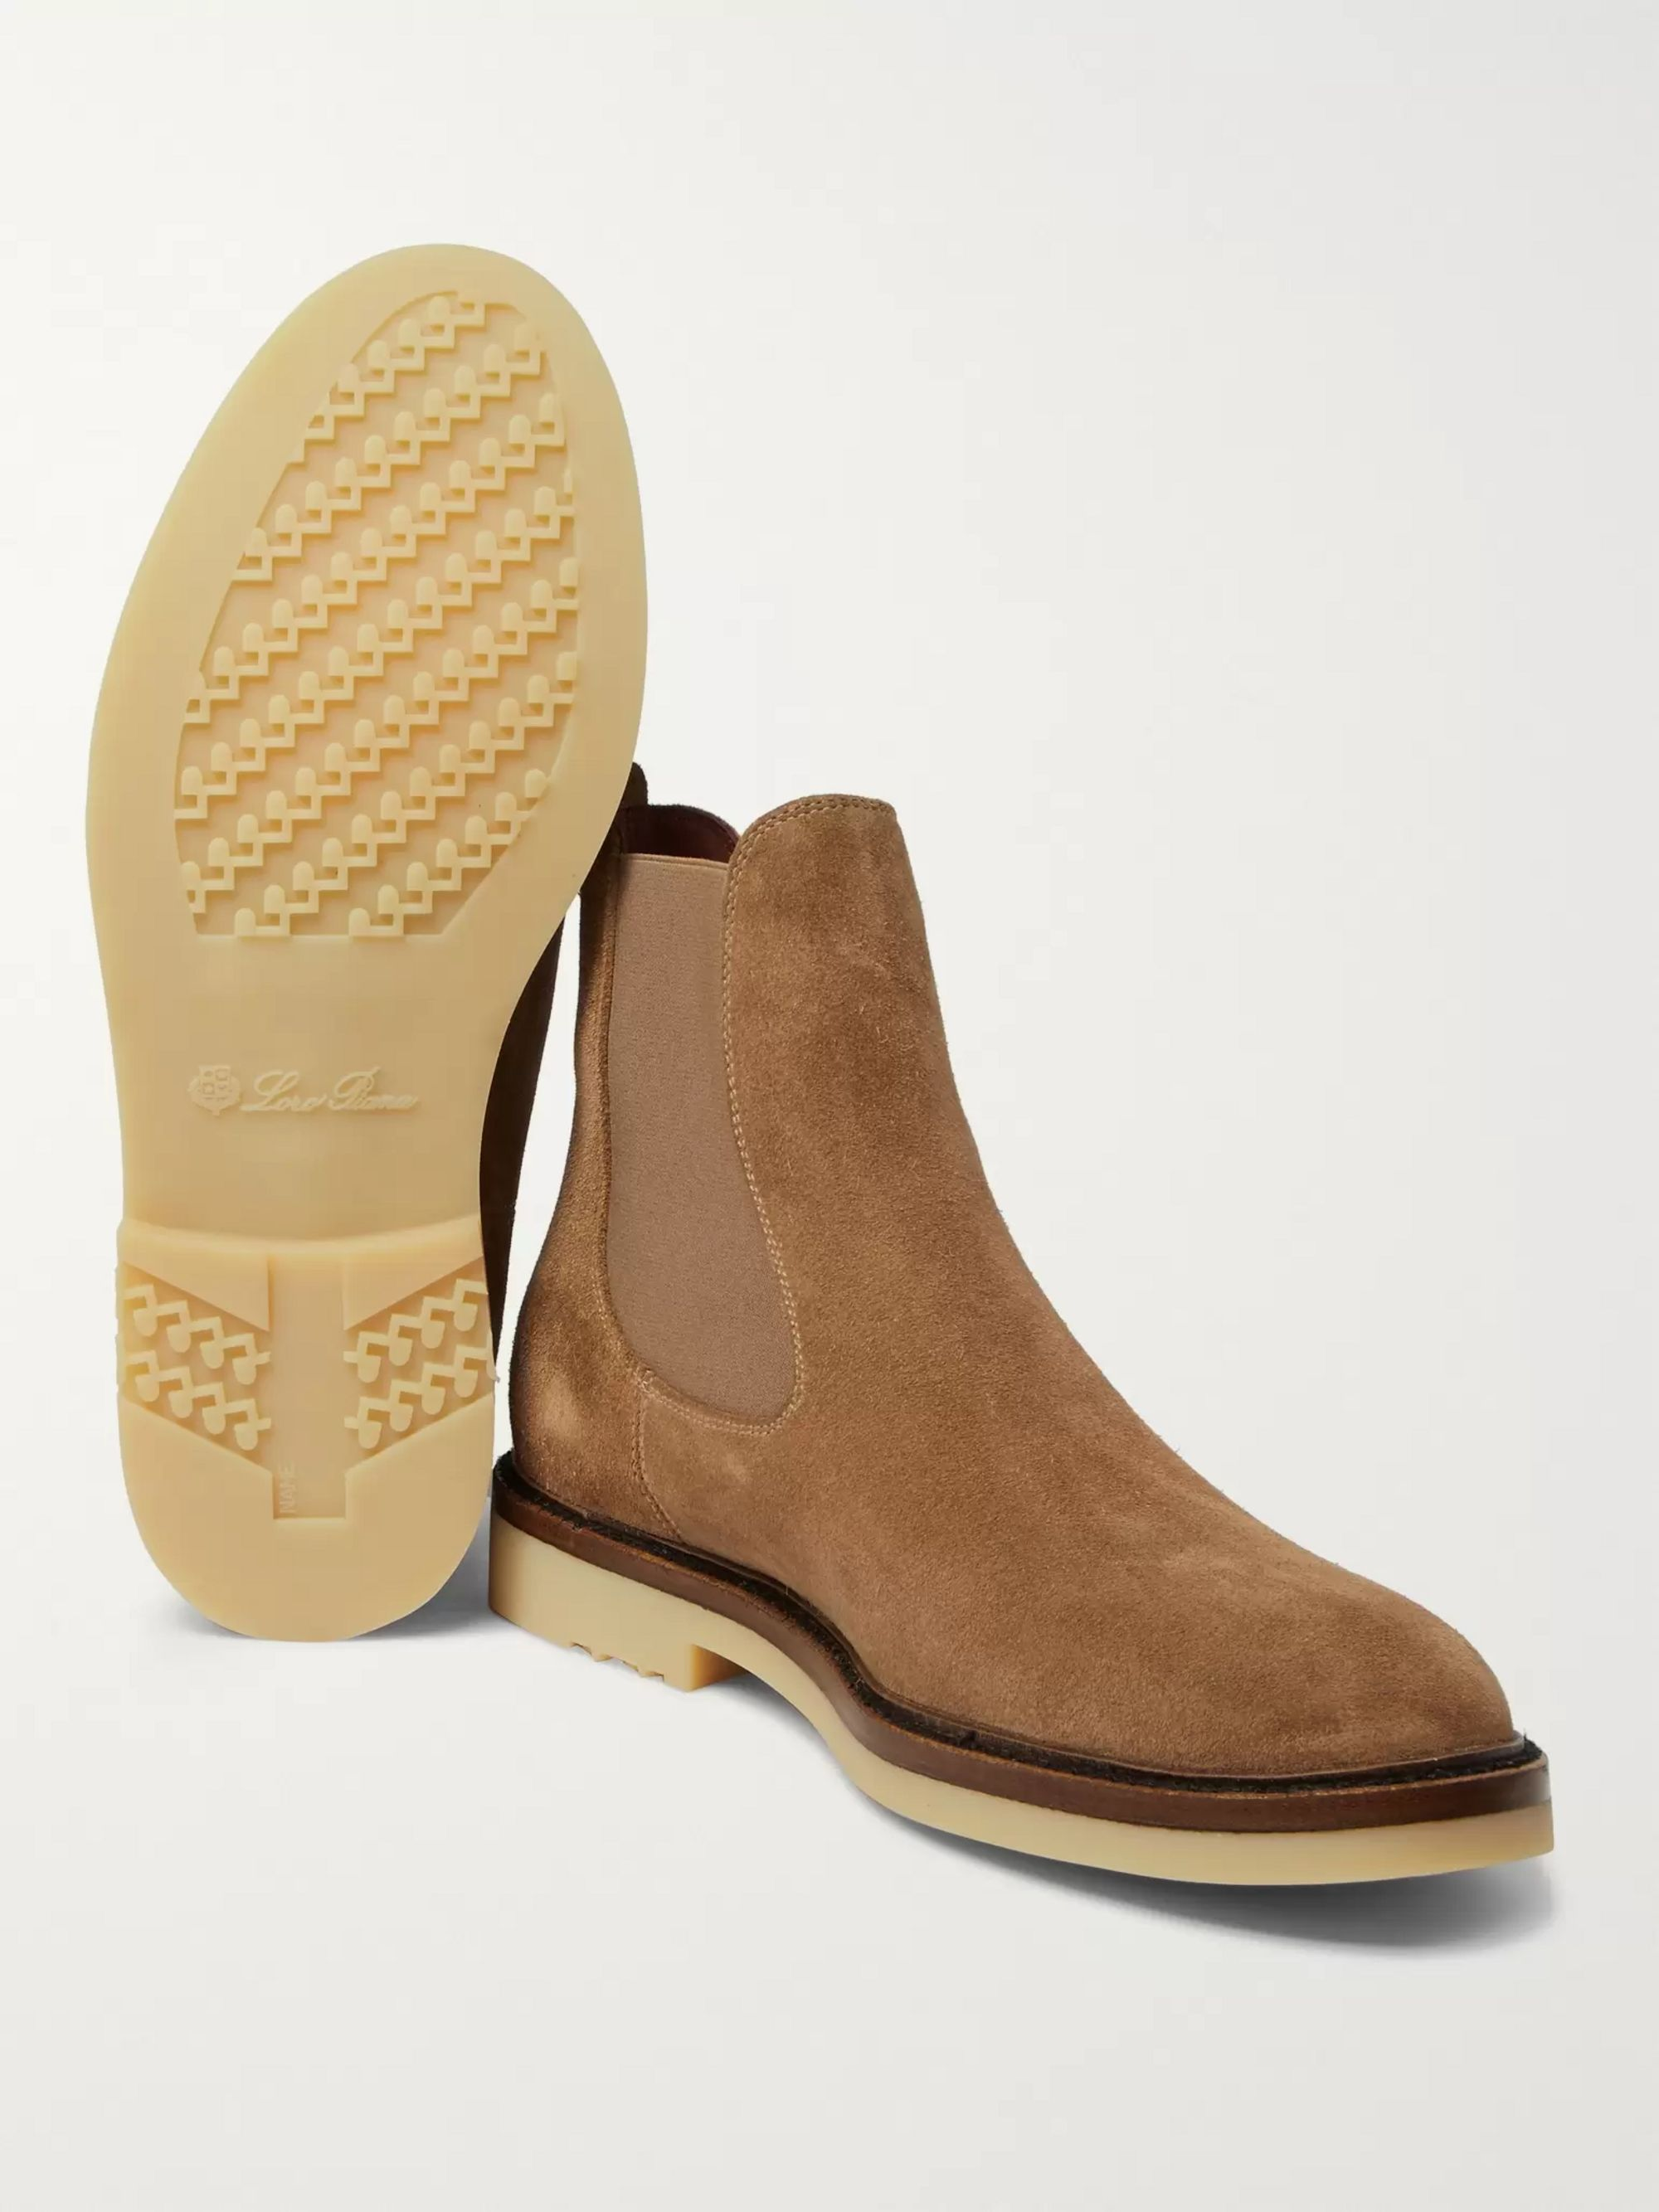 Loro Piana Winter Beatle Walk Suede Chelsea Boots